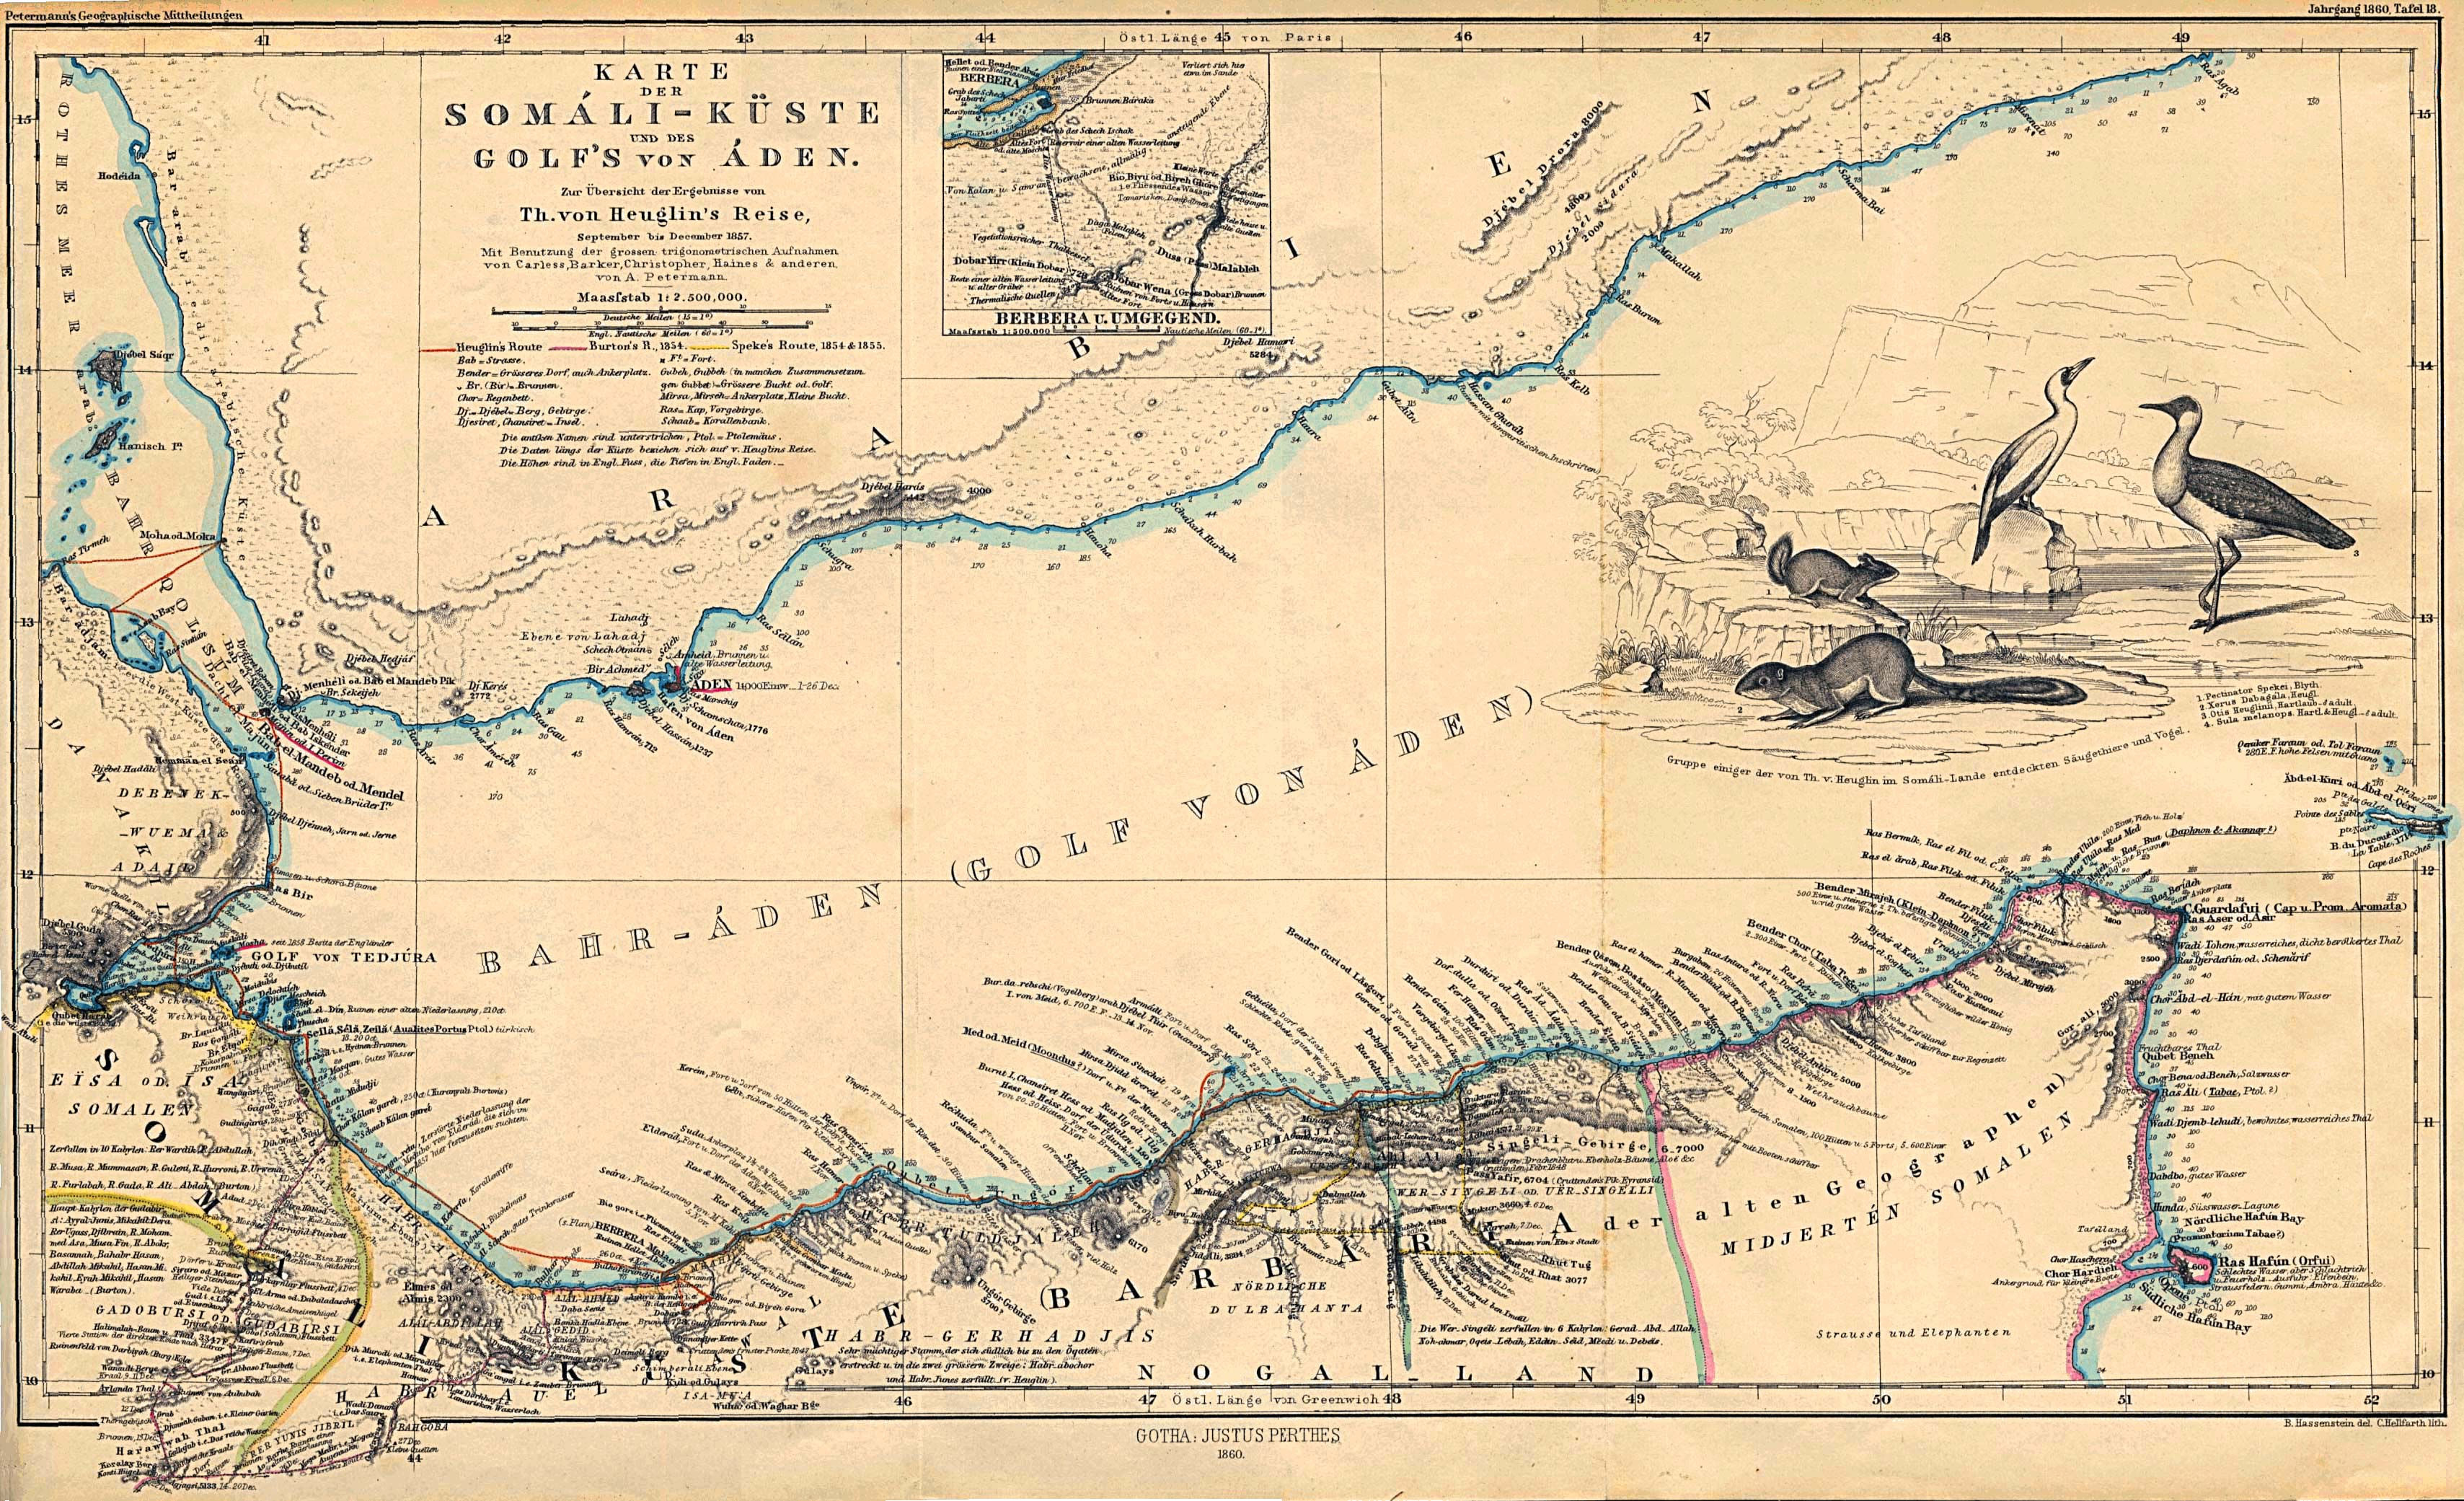 Map of the Somali Coast and Aden Gulf 1860